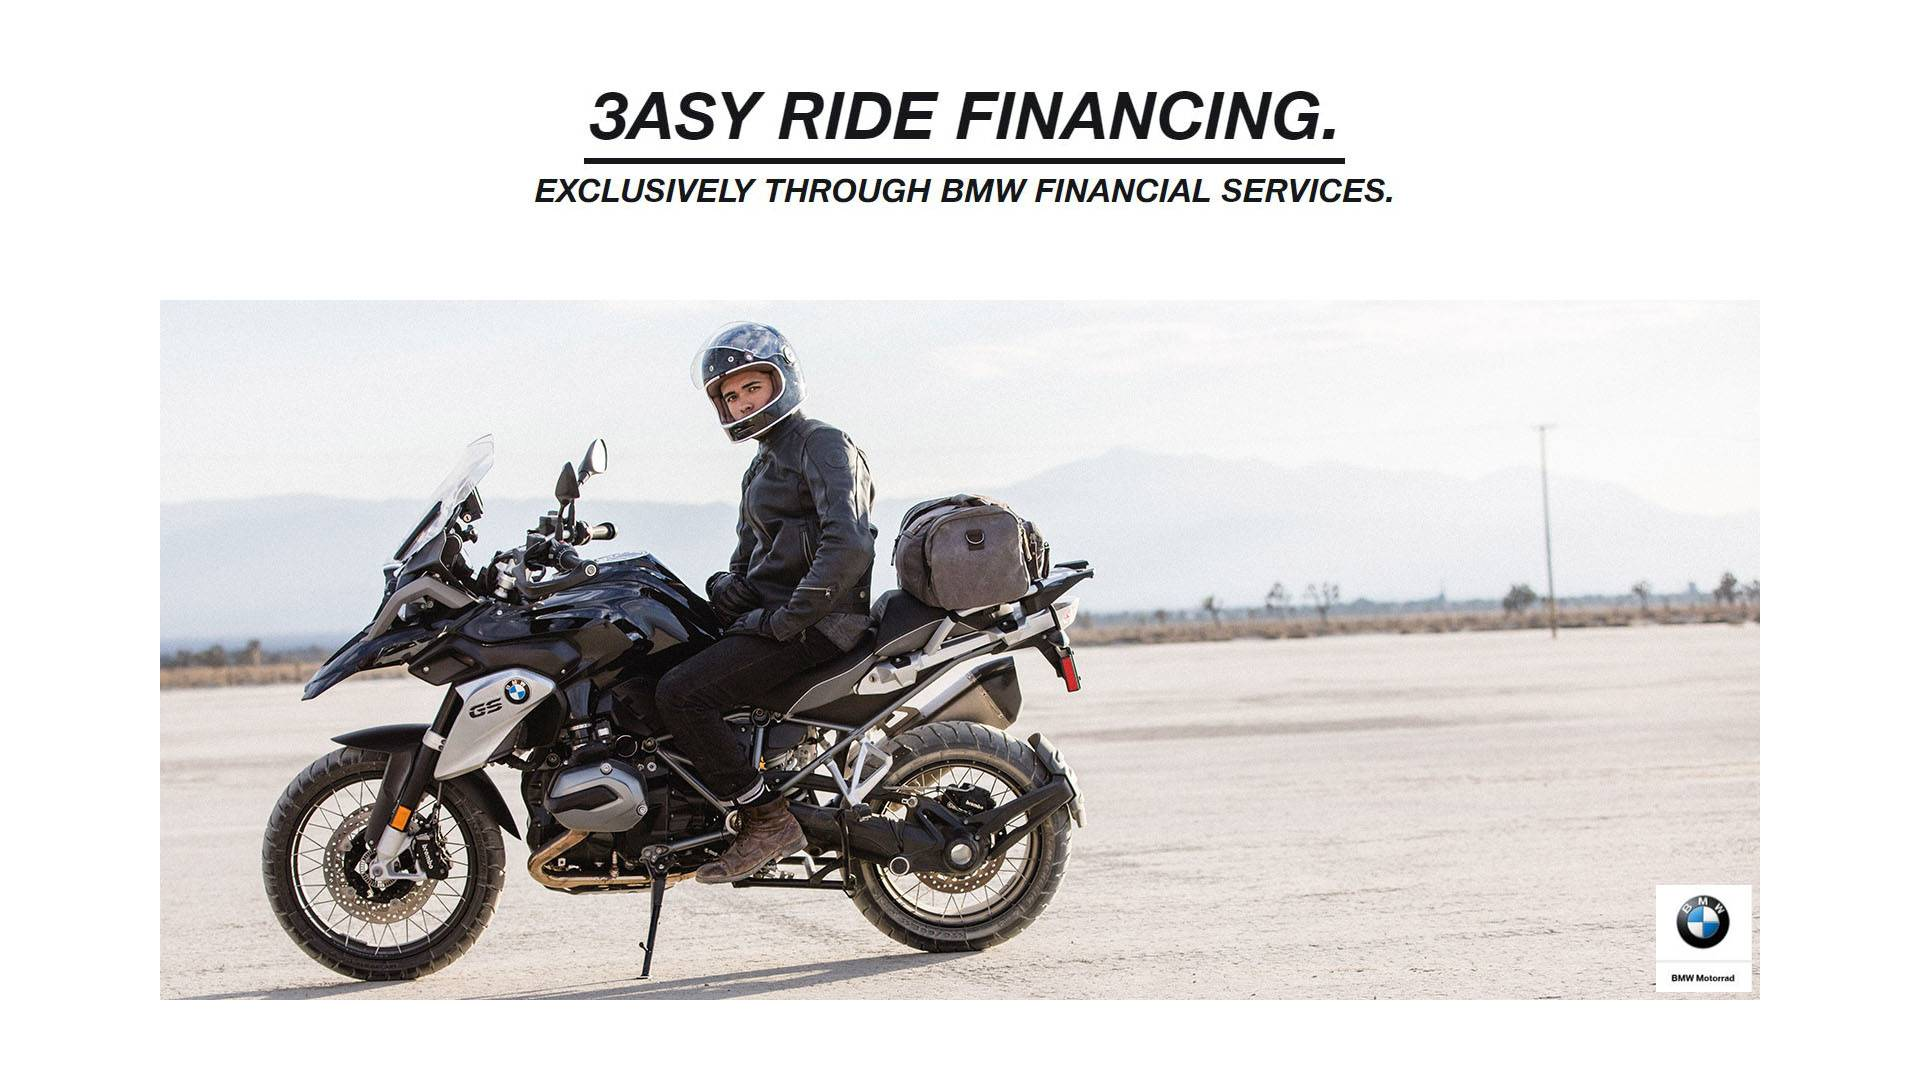 BMW 3ASY RIDE FINANCING